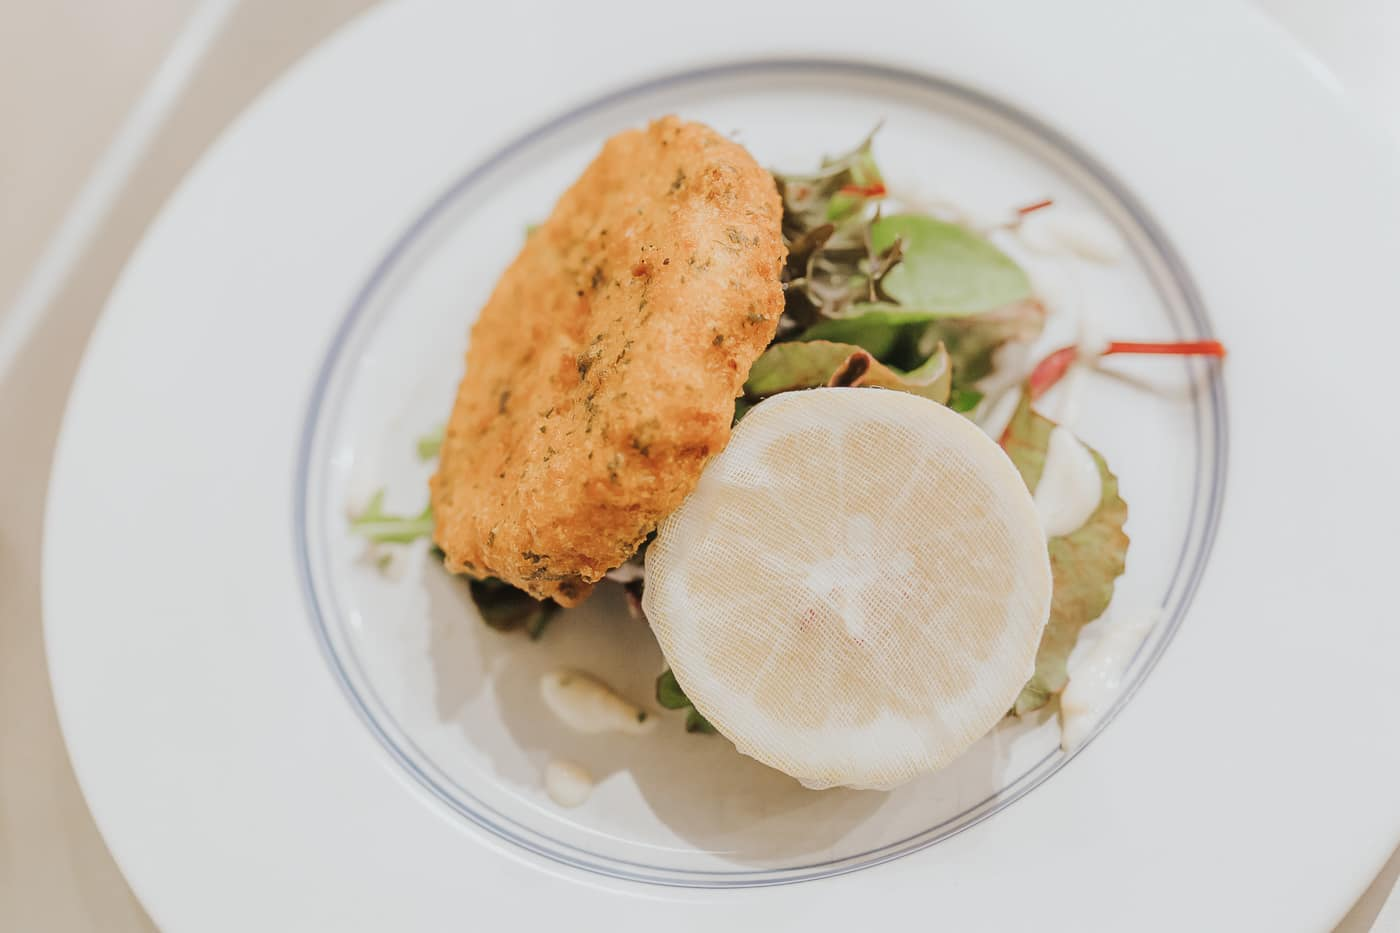 A top down view of a fishcake resting on a salad